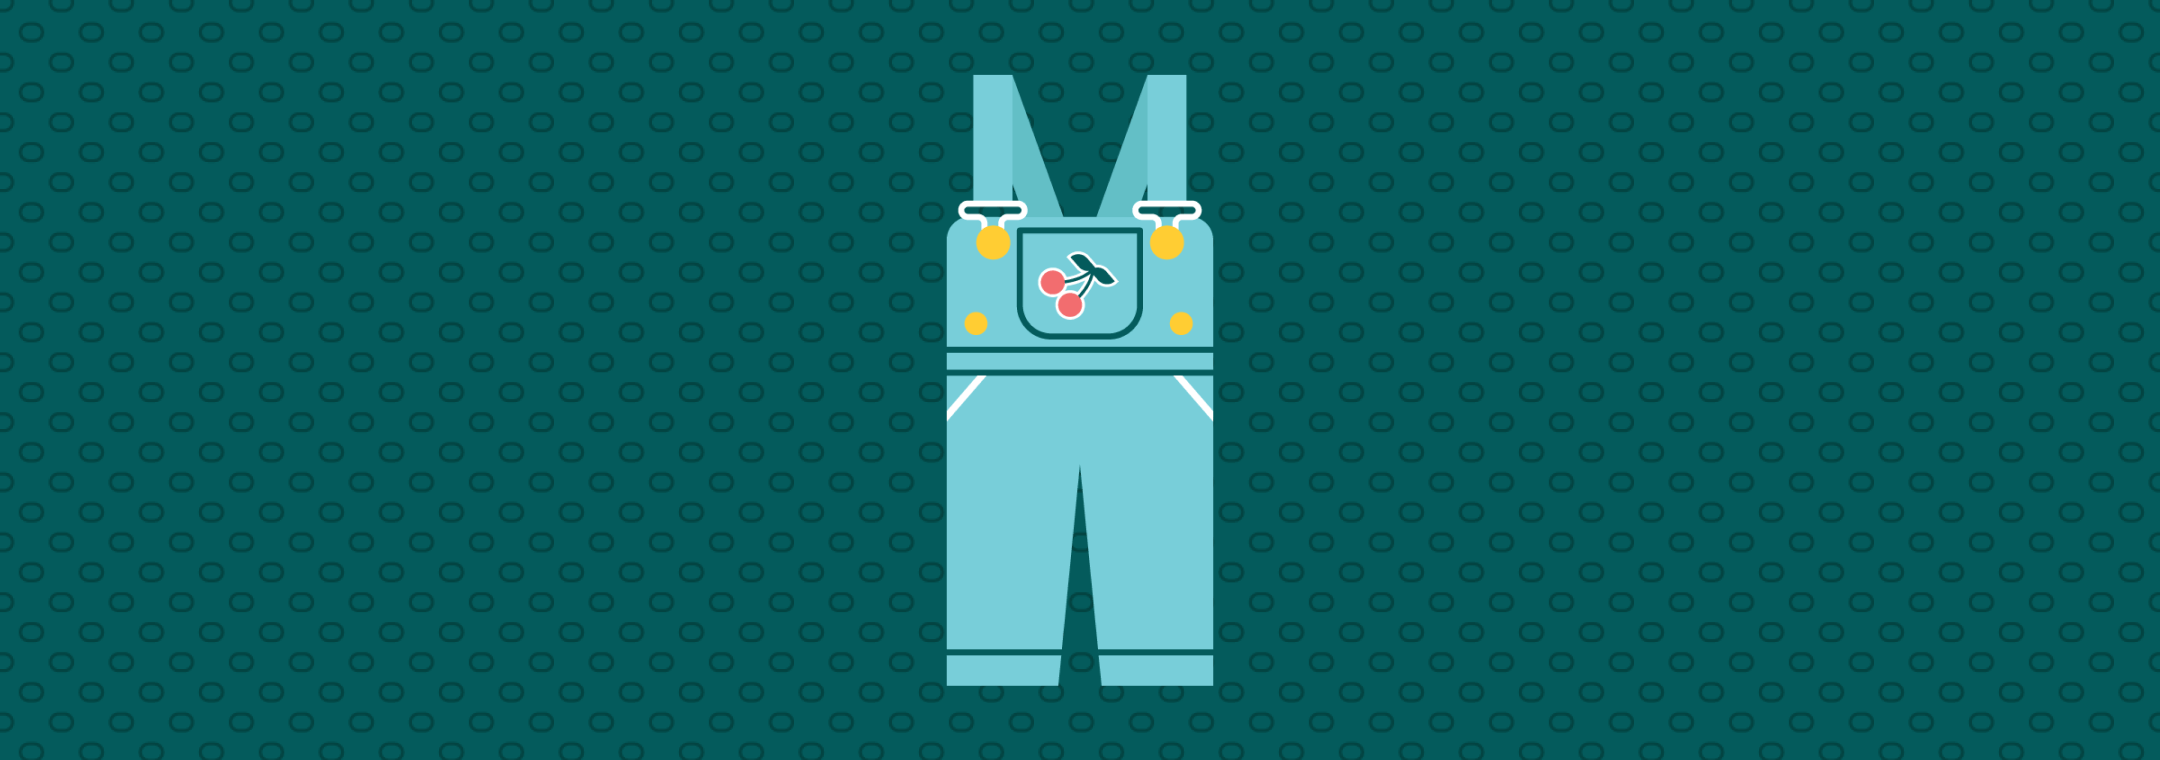 toddler overalls with cherry on the pocket